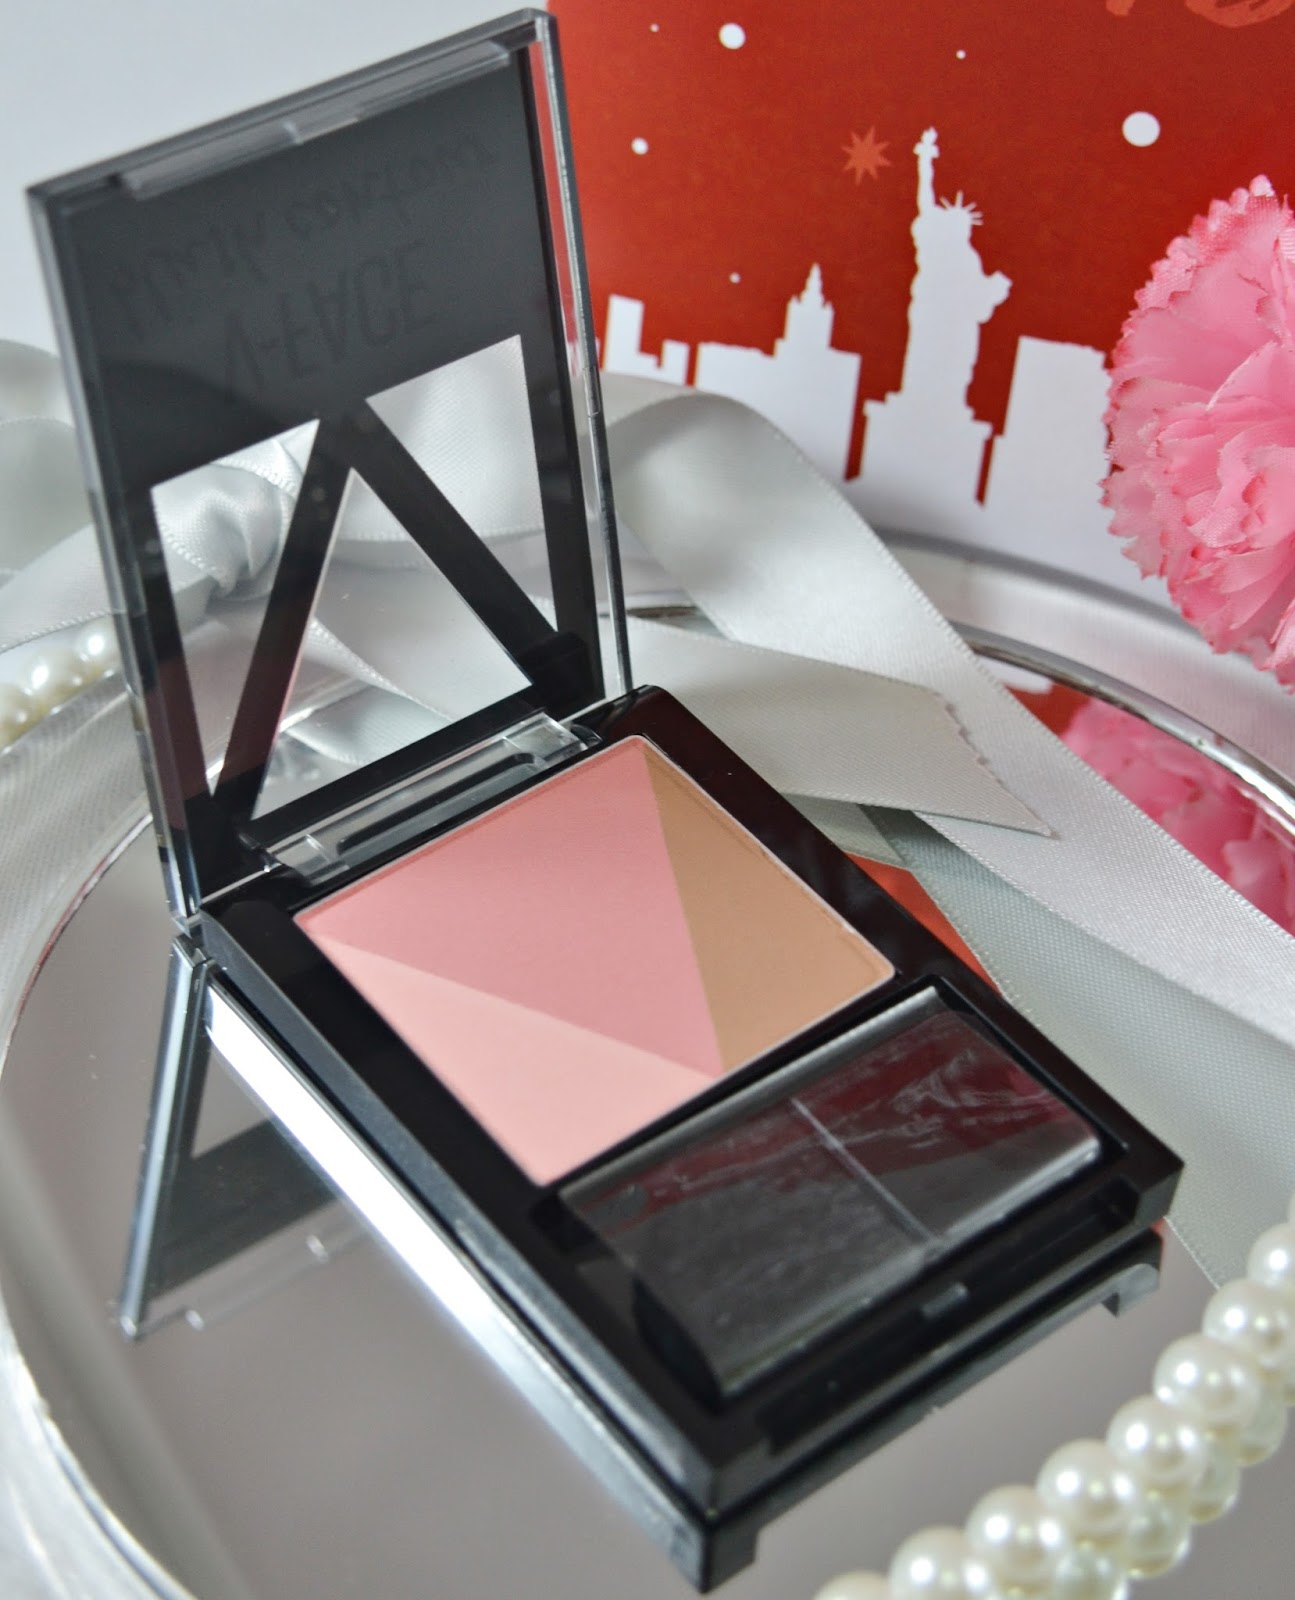 Maybelline V Face Blush Contour In Wine All About Beauty 101 Duo Powder Contouring Product Review Maybellines